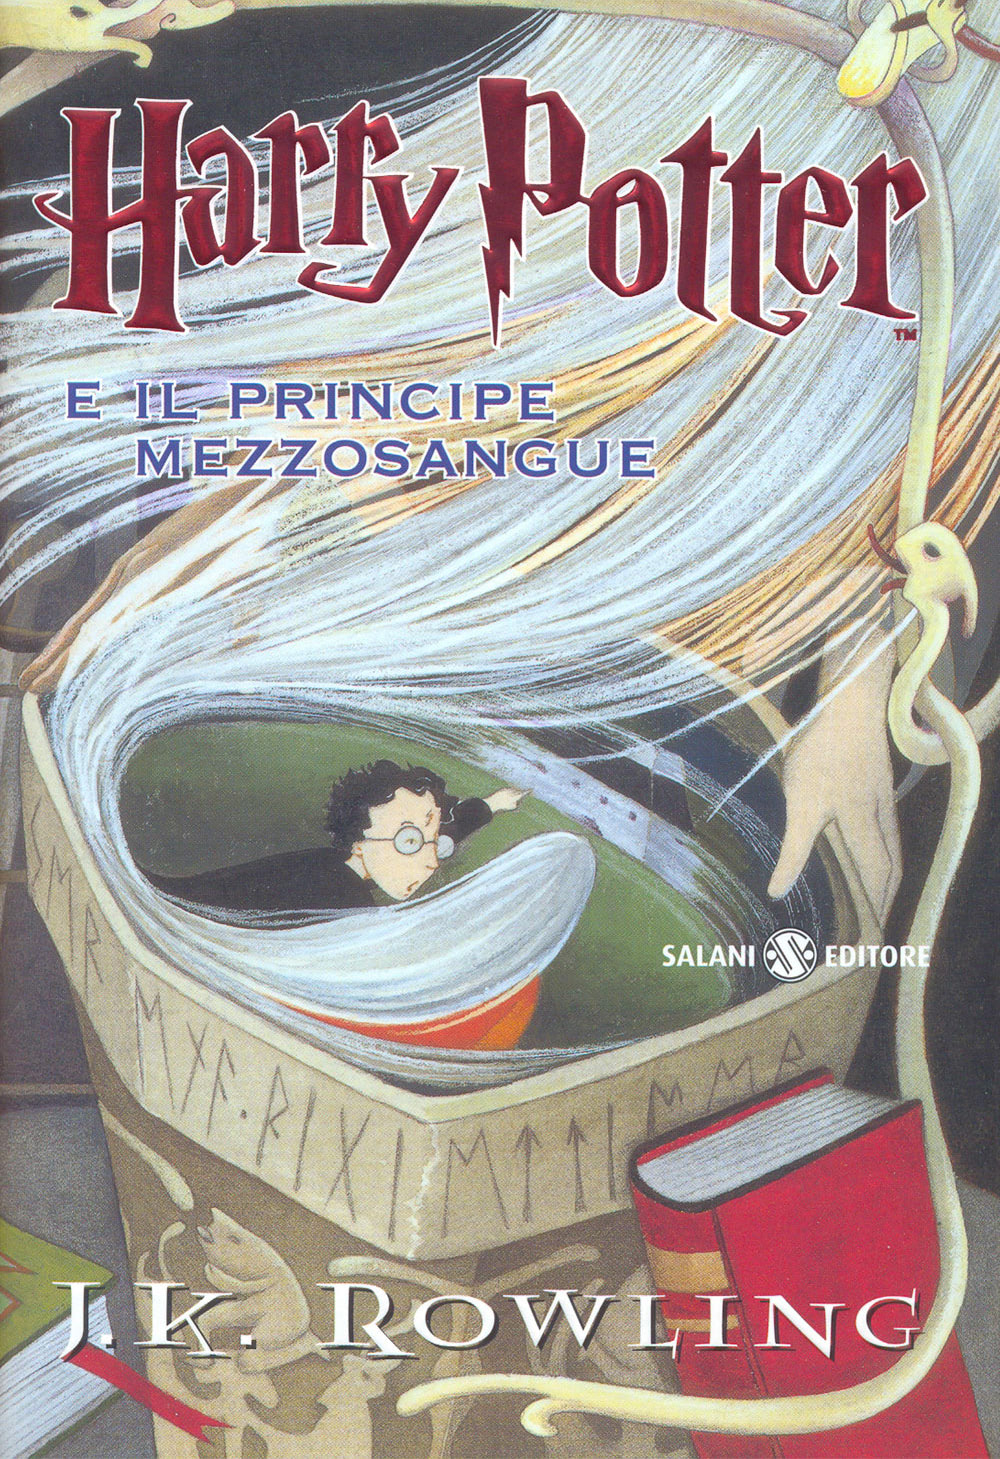 'Half-Blood Prince' Italian edition